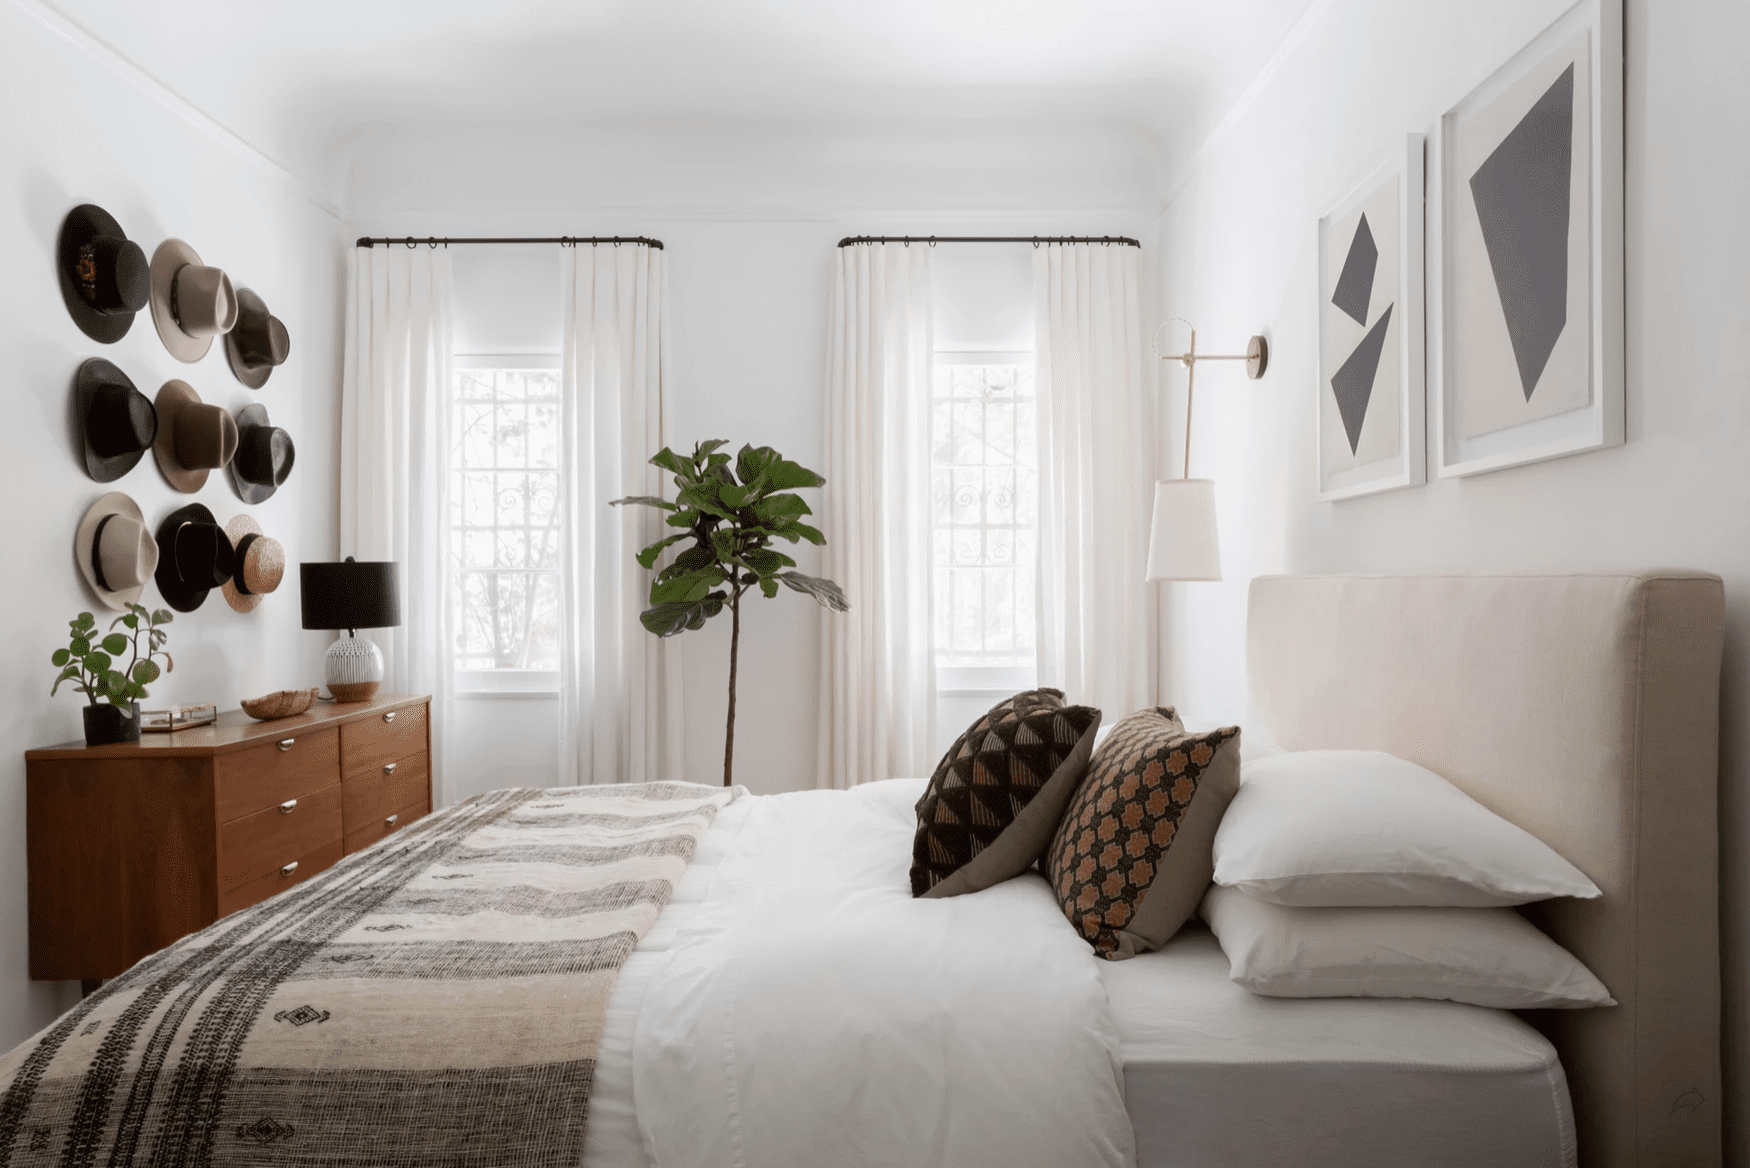 A bedroom with sheer white curtains